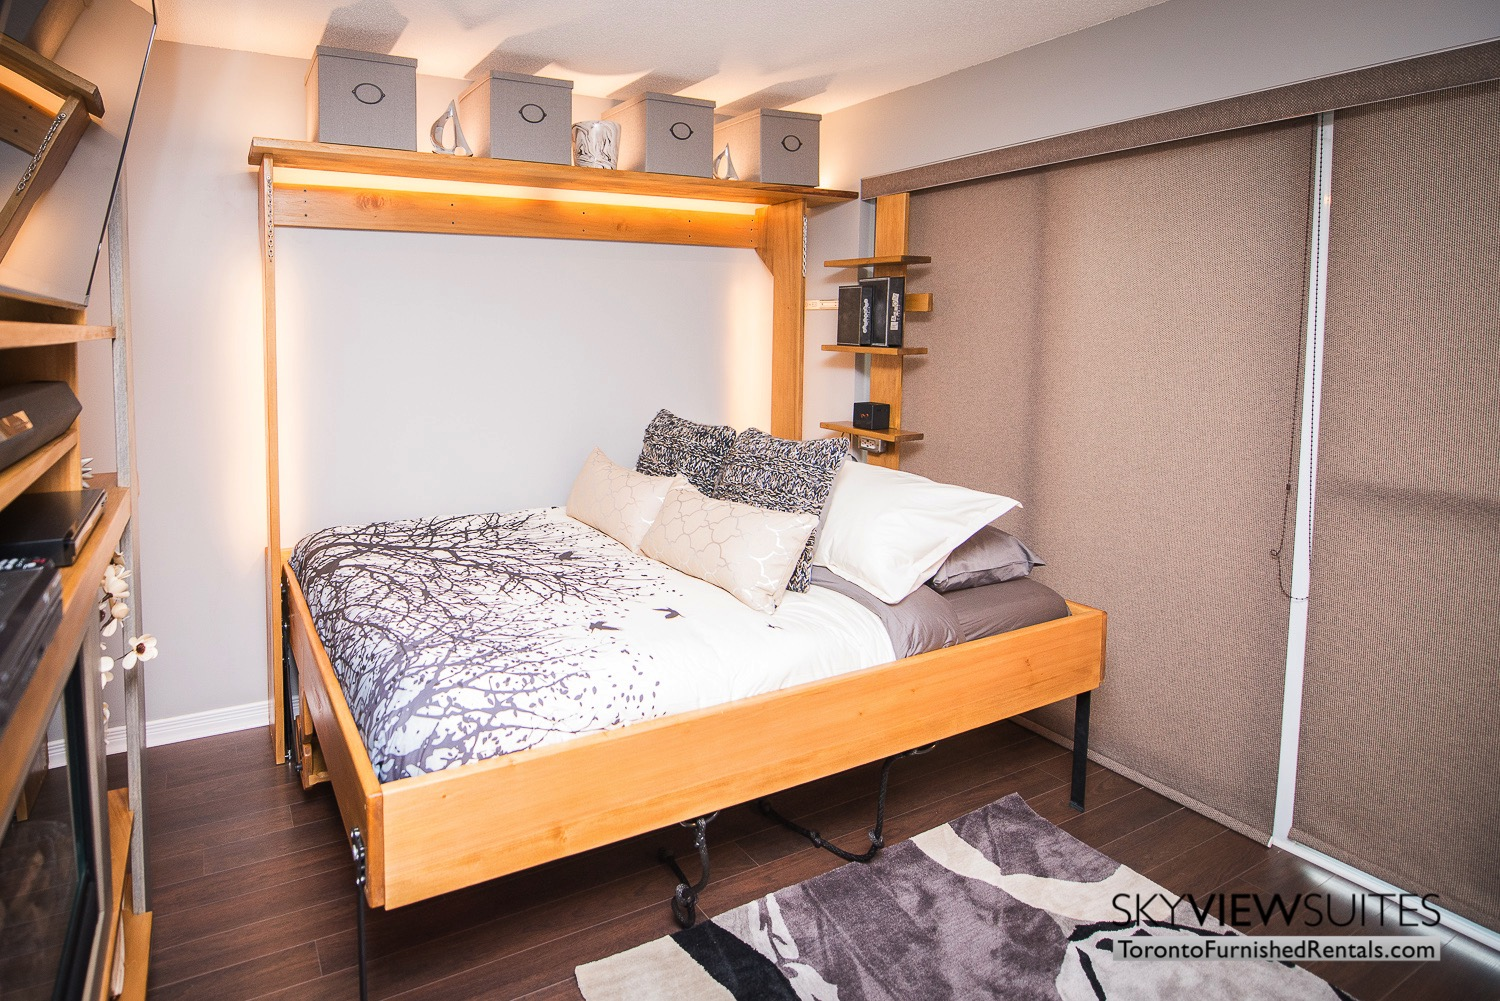 352 Front St. W., Toronto furnished rental bedroom murphy bed